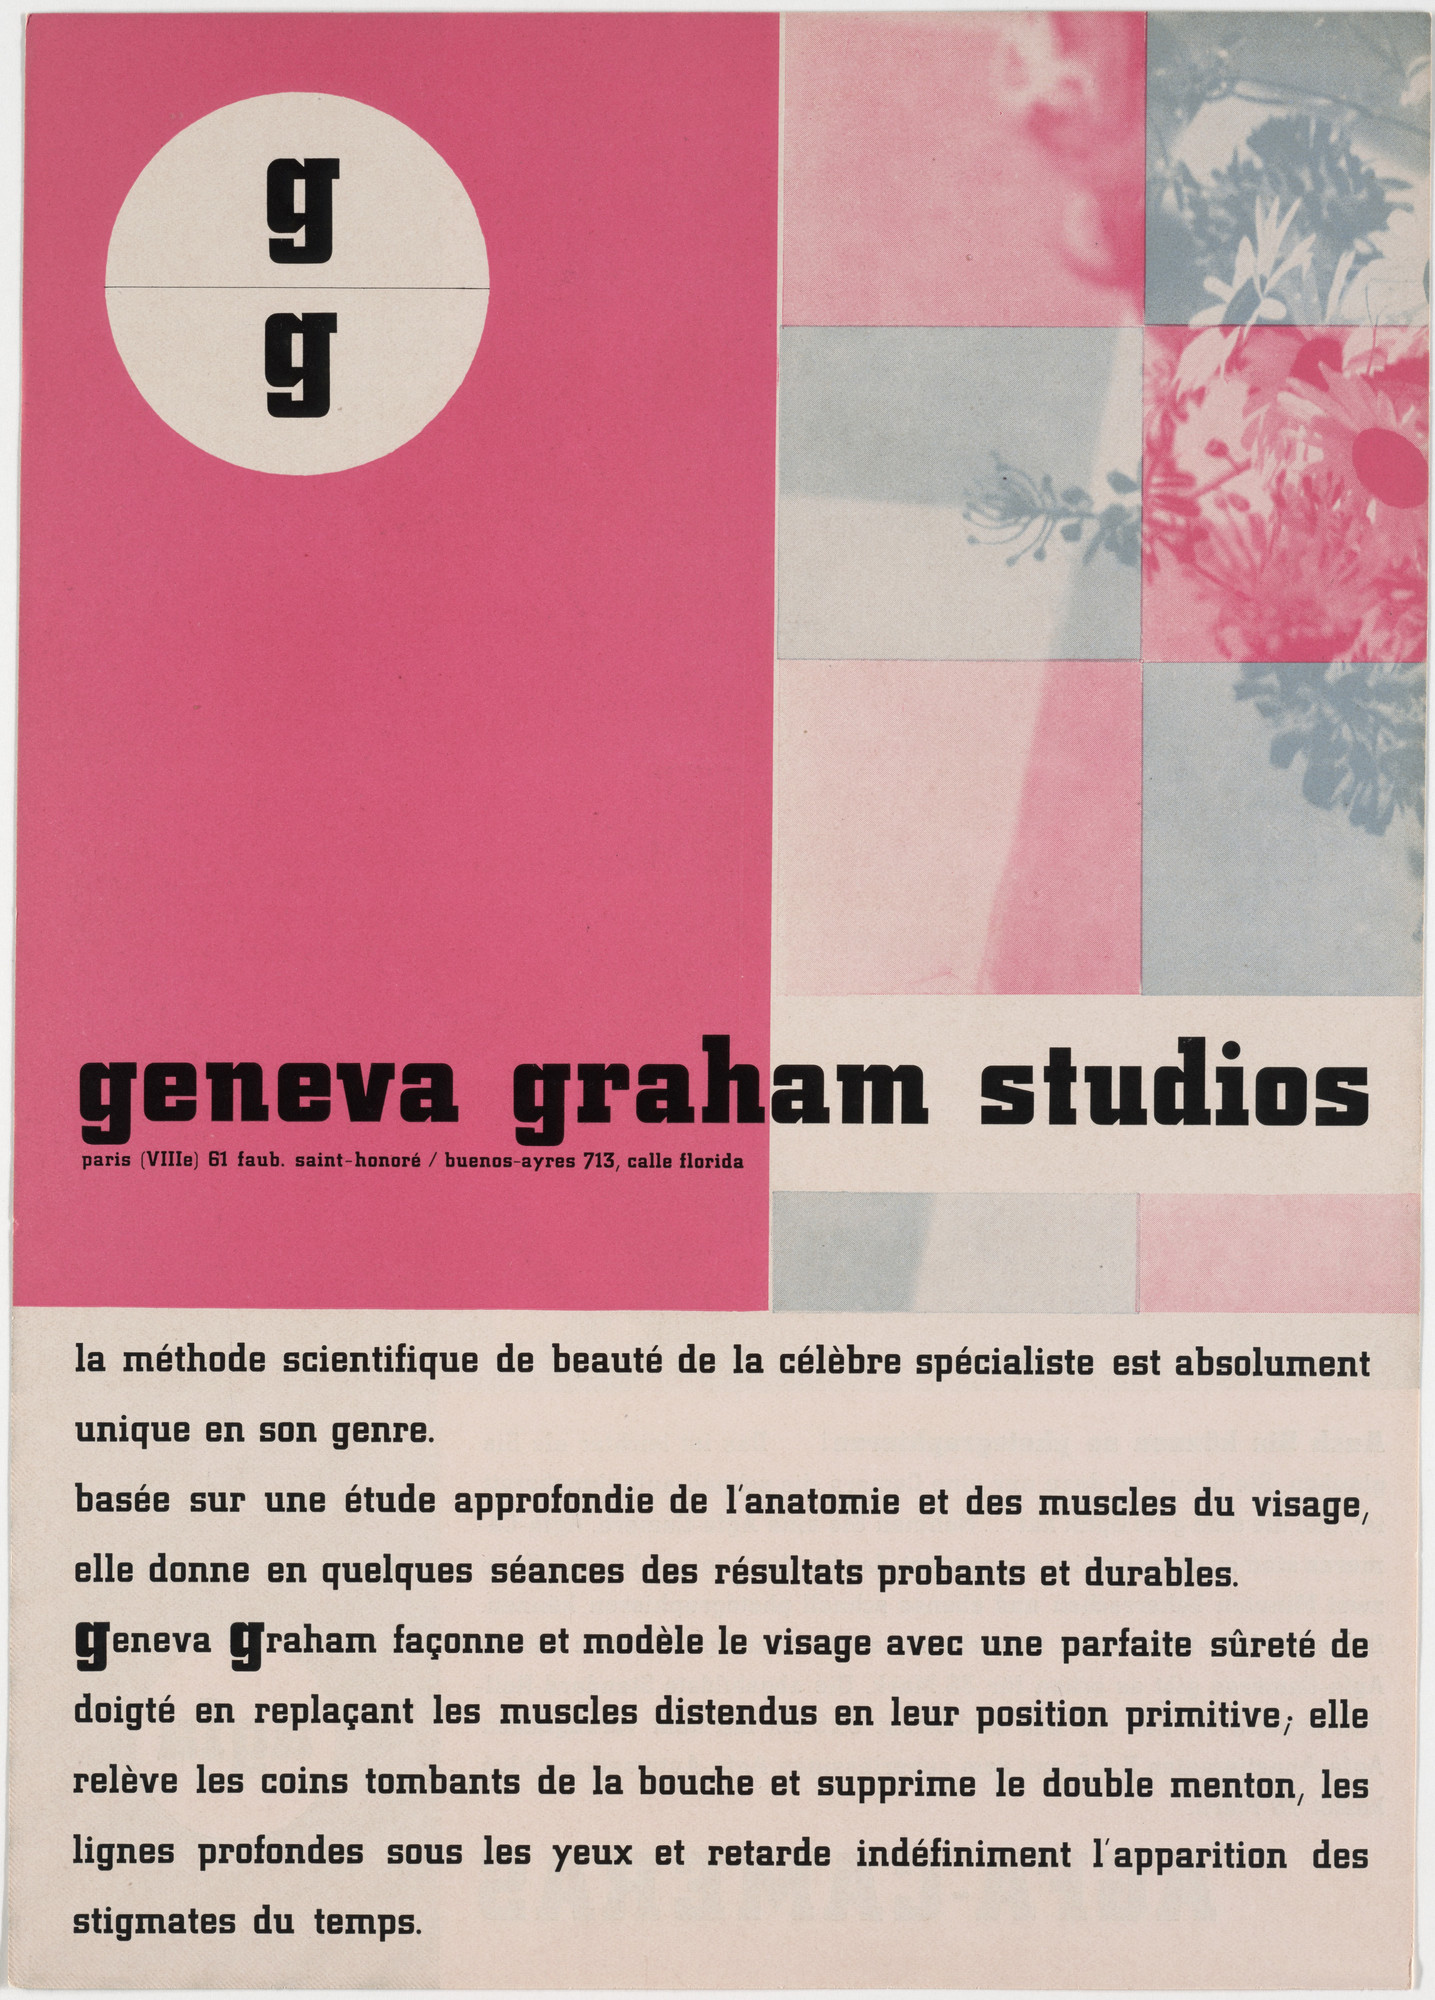 Georg Trump. Side 1: Geneva Graham Studios; side 2: AGFA-Cameras Geneva. c. 1931